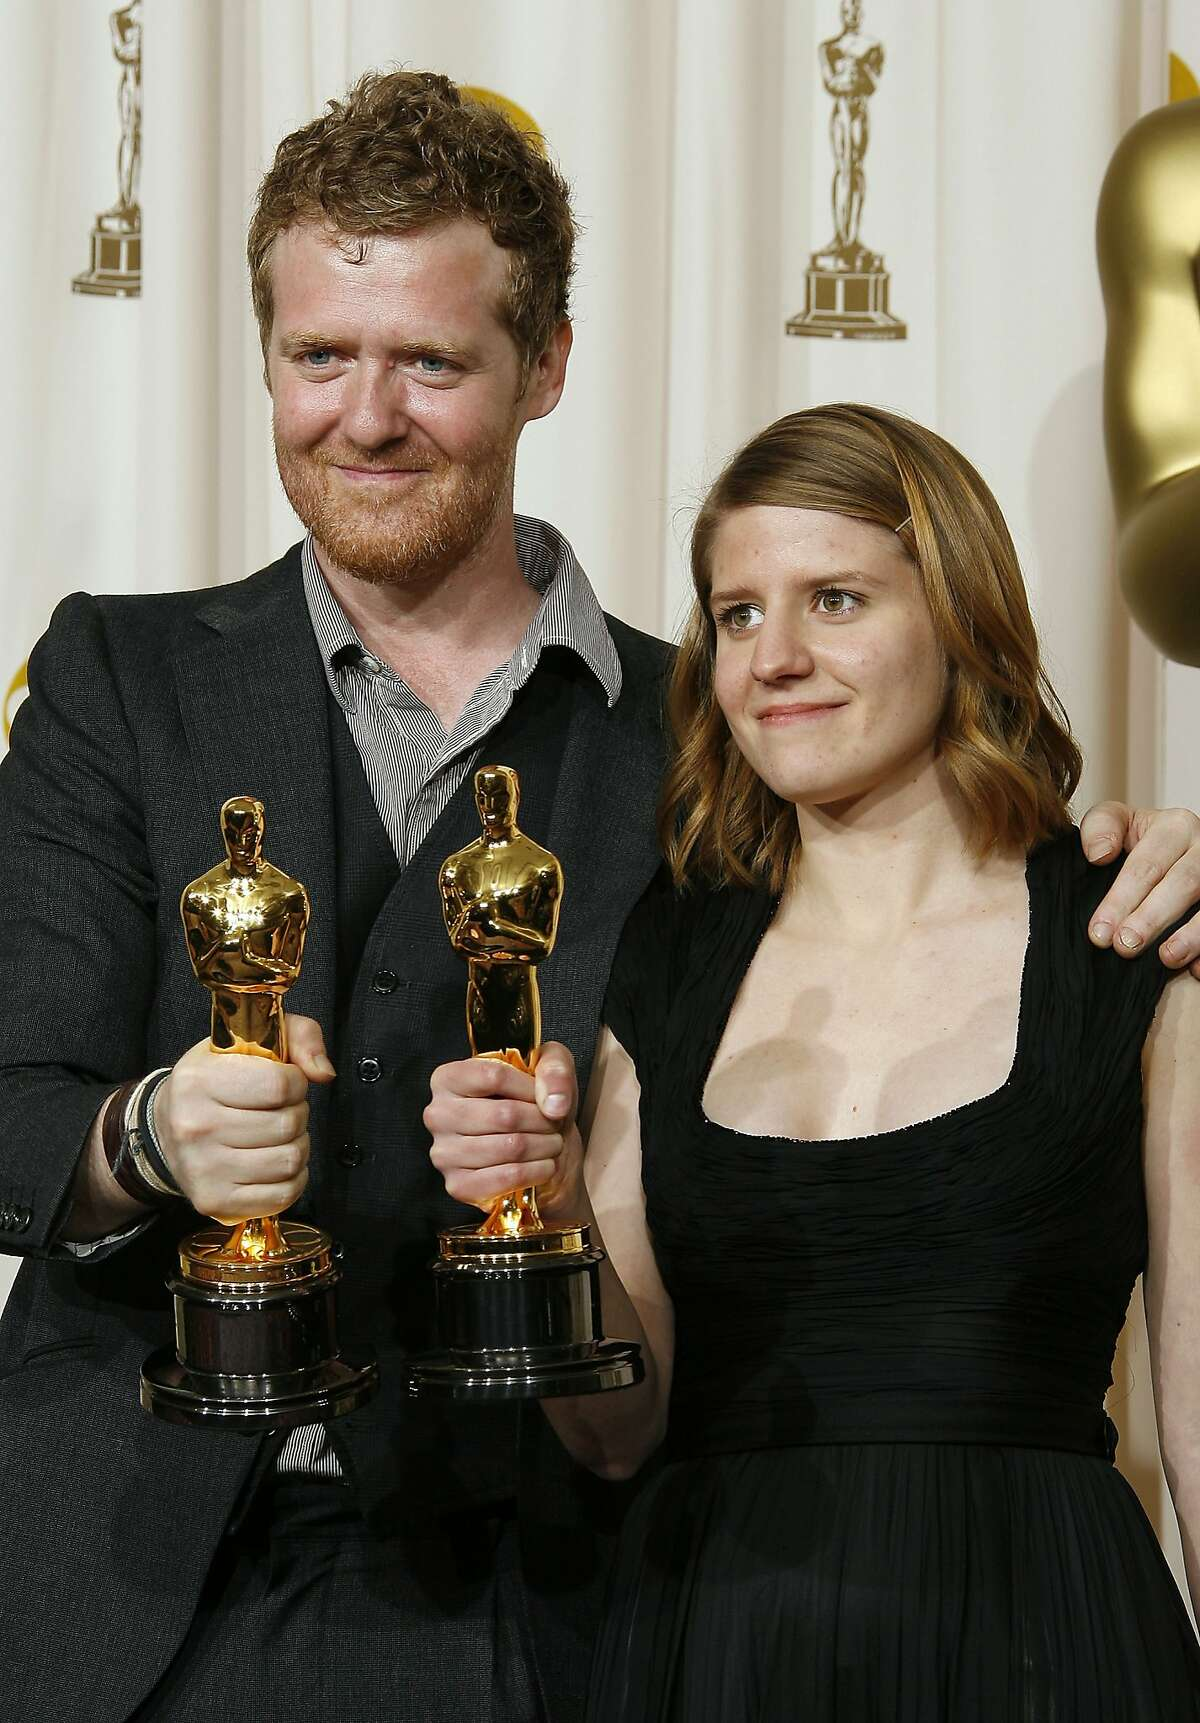 80th Annual Academy Awards - Songwriters Glen Hansard (L) and Marketa Irglova, winners of the award Achievement In Music Written For Motion Pictures (Original song) for 'Falling Slowly' from 'Once'. HOLLYWOOD - FEBRUARY 24: ***NO ONLINE, NO INTERNET, EMBARGOED FROM INTERNET AND TELEVISION USAGE UNTIL THE CONCLUSION OF THE LIVE OSCARS TELECAST*** Songwriters Glen Hansard (L) and Marketa Irglova, winners of the award Achievement In Music Written For Motion Pictures (Original song) for 'Falling Slowly' from 'Once' (Fox Searchlight) pose in the press room during the 80th Annual Academy Awards held at the Kodak Theatre on February 24, 2008 in Hollywood, California. (Photo by Vince Bucci/Getty Images)